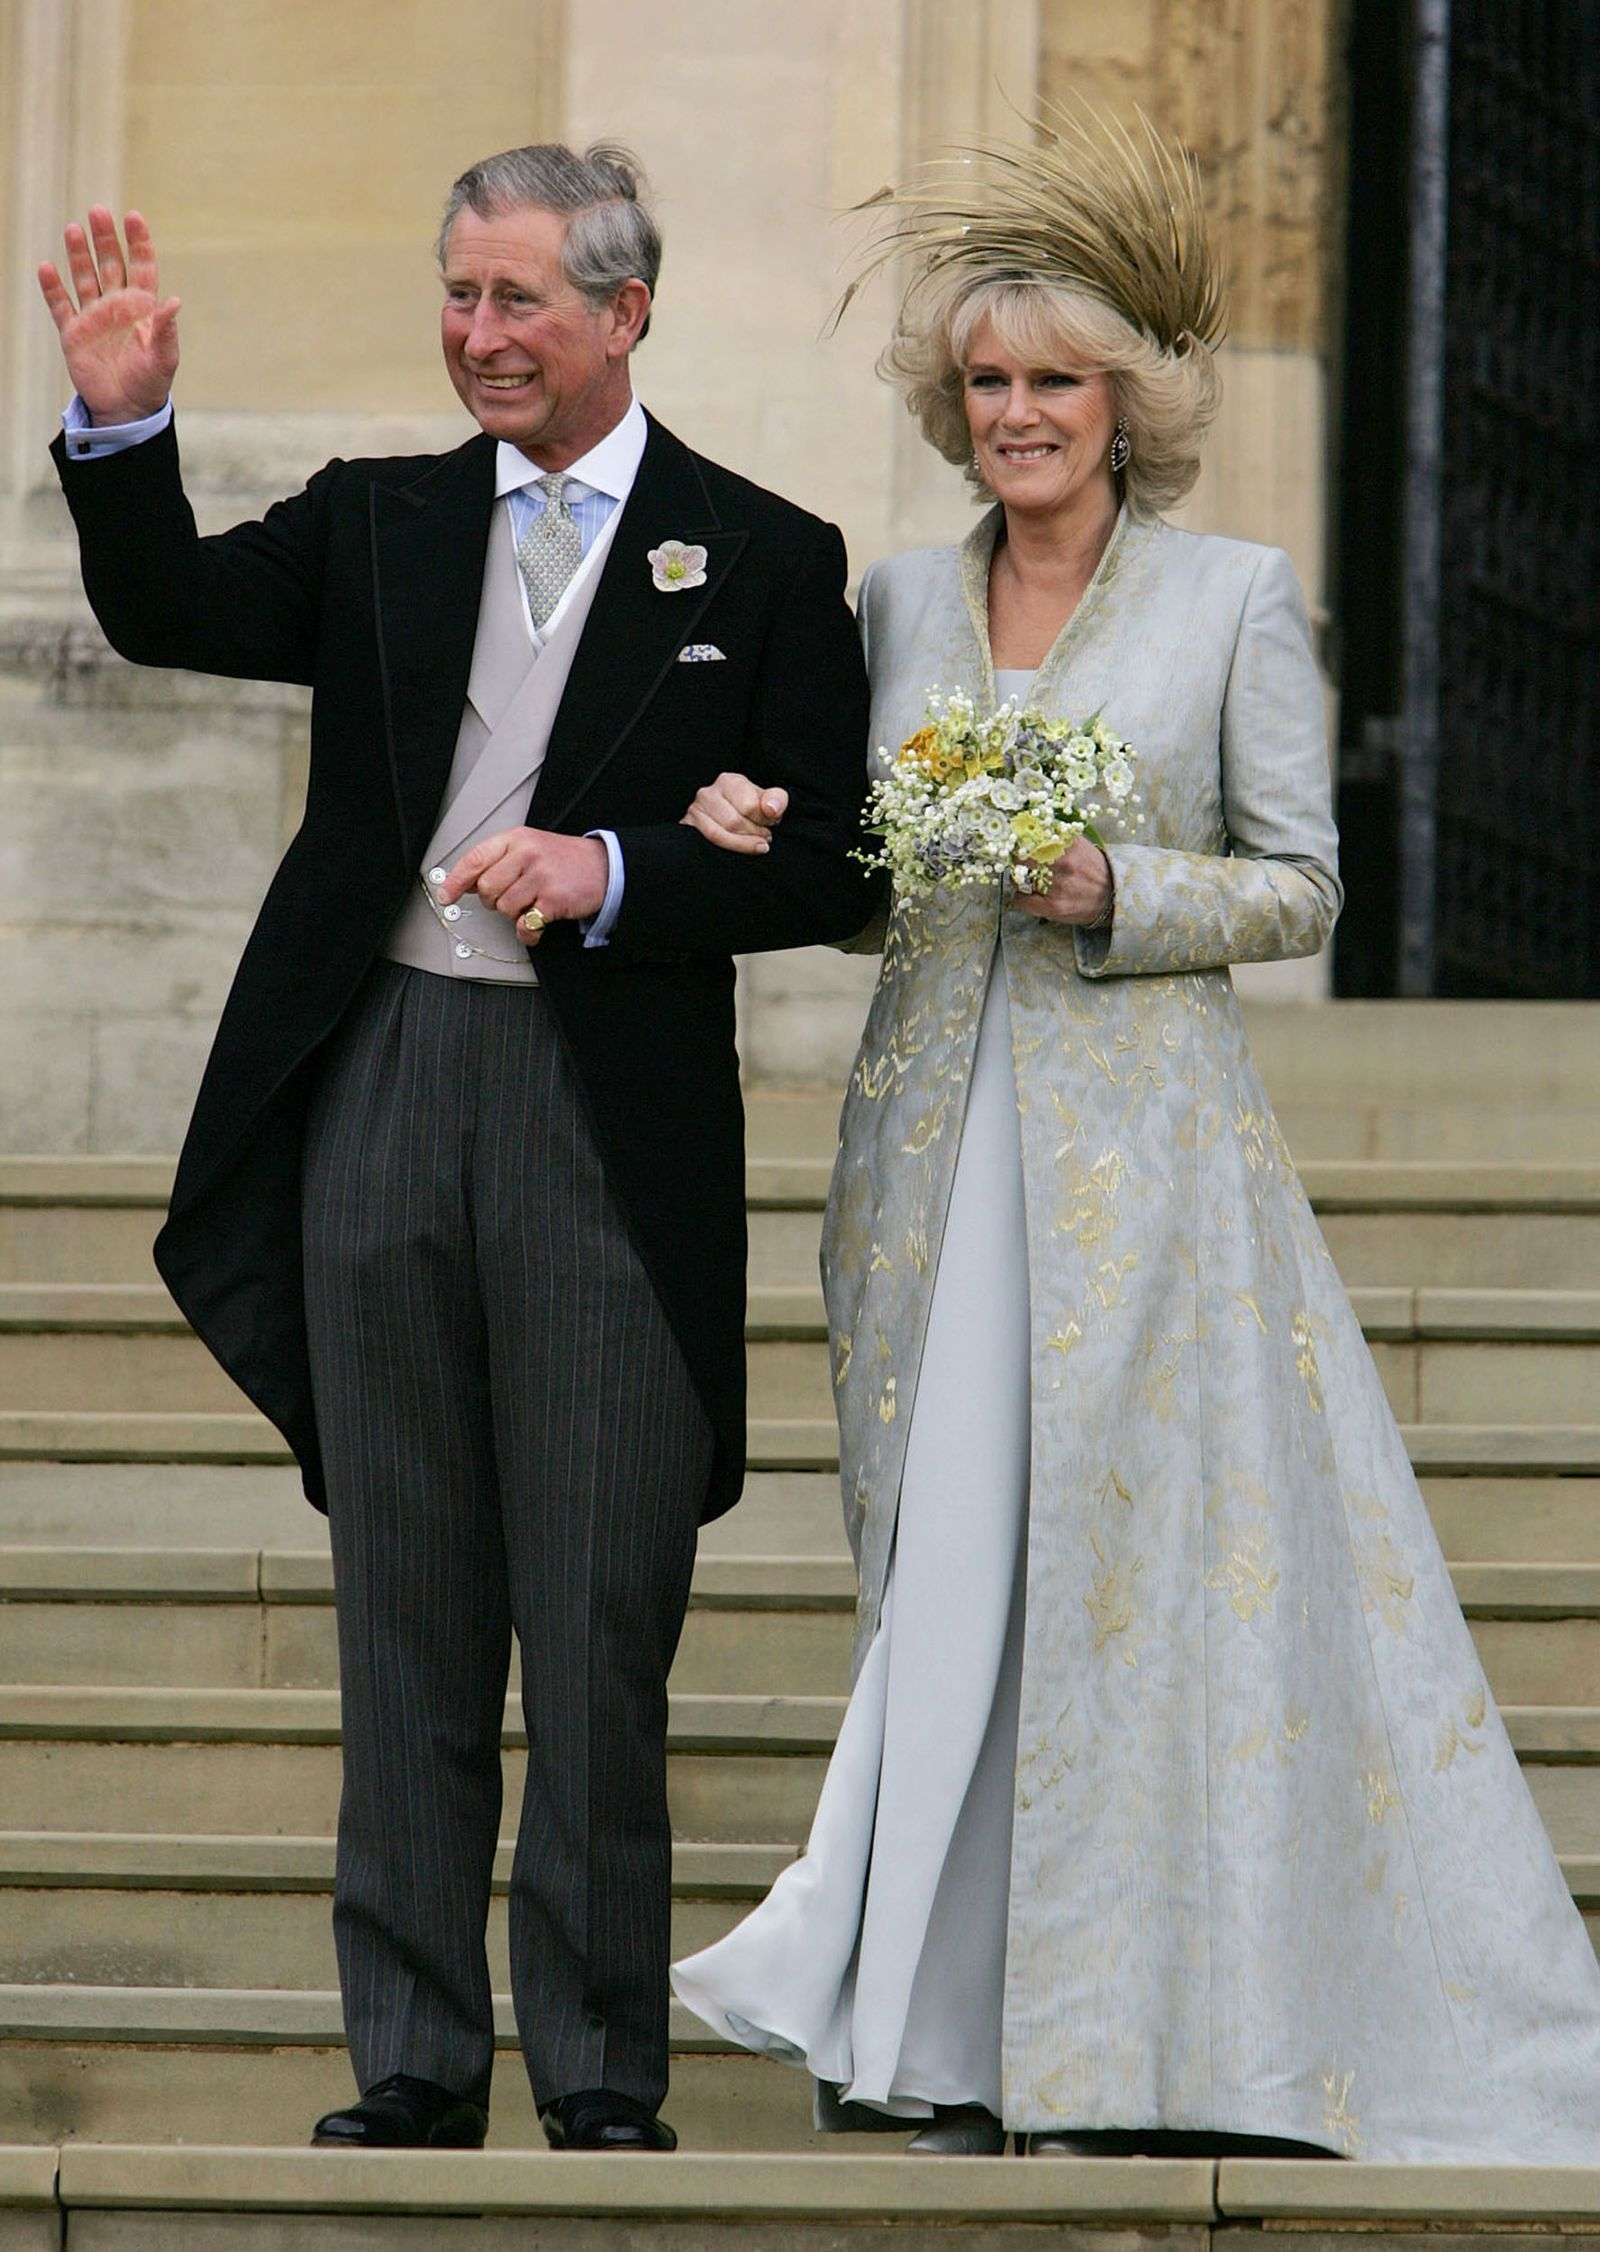 Prince Charles And Camilla Parker Bowles Wedding Had To Be Split